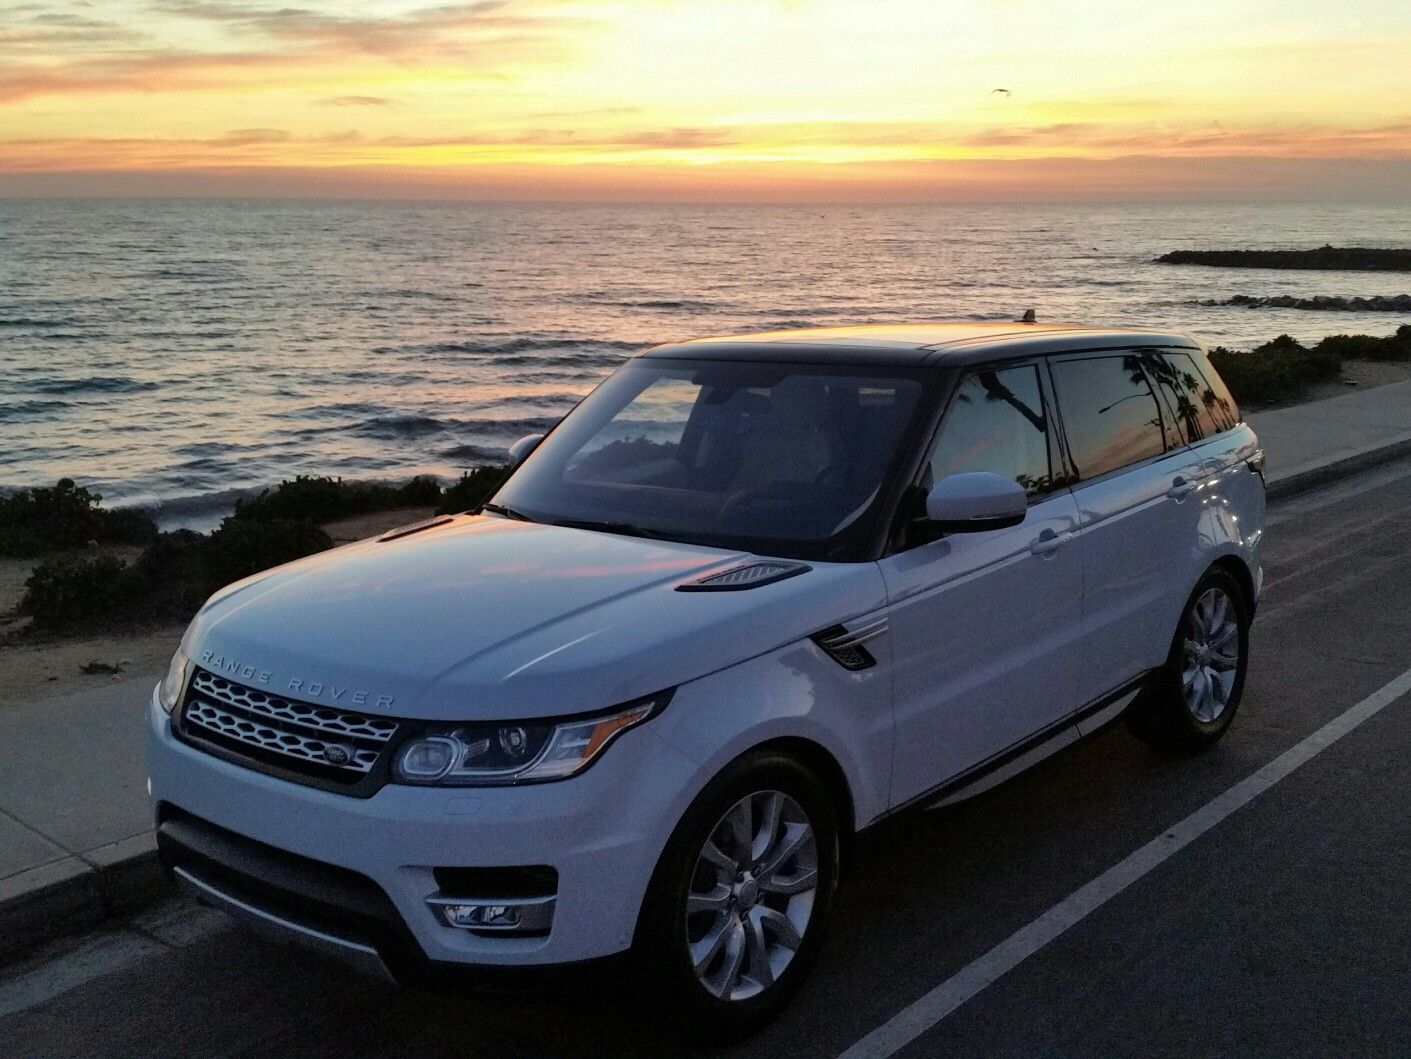 2016 Range Rover Sport HSE with the Td6. A very enticing